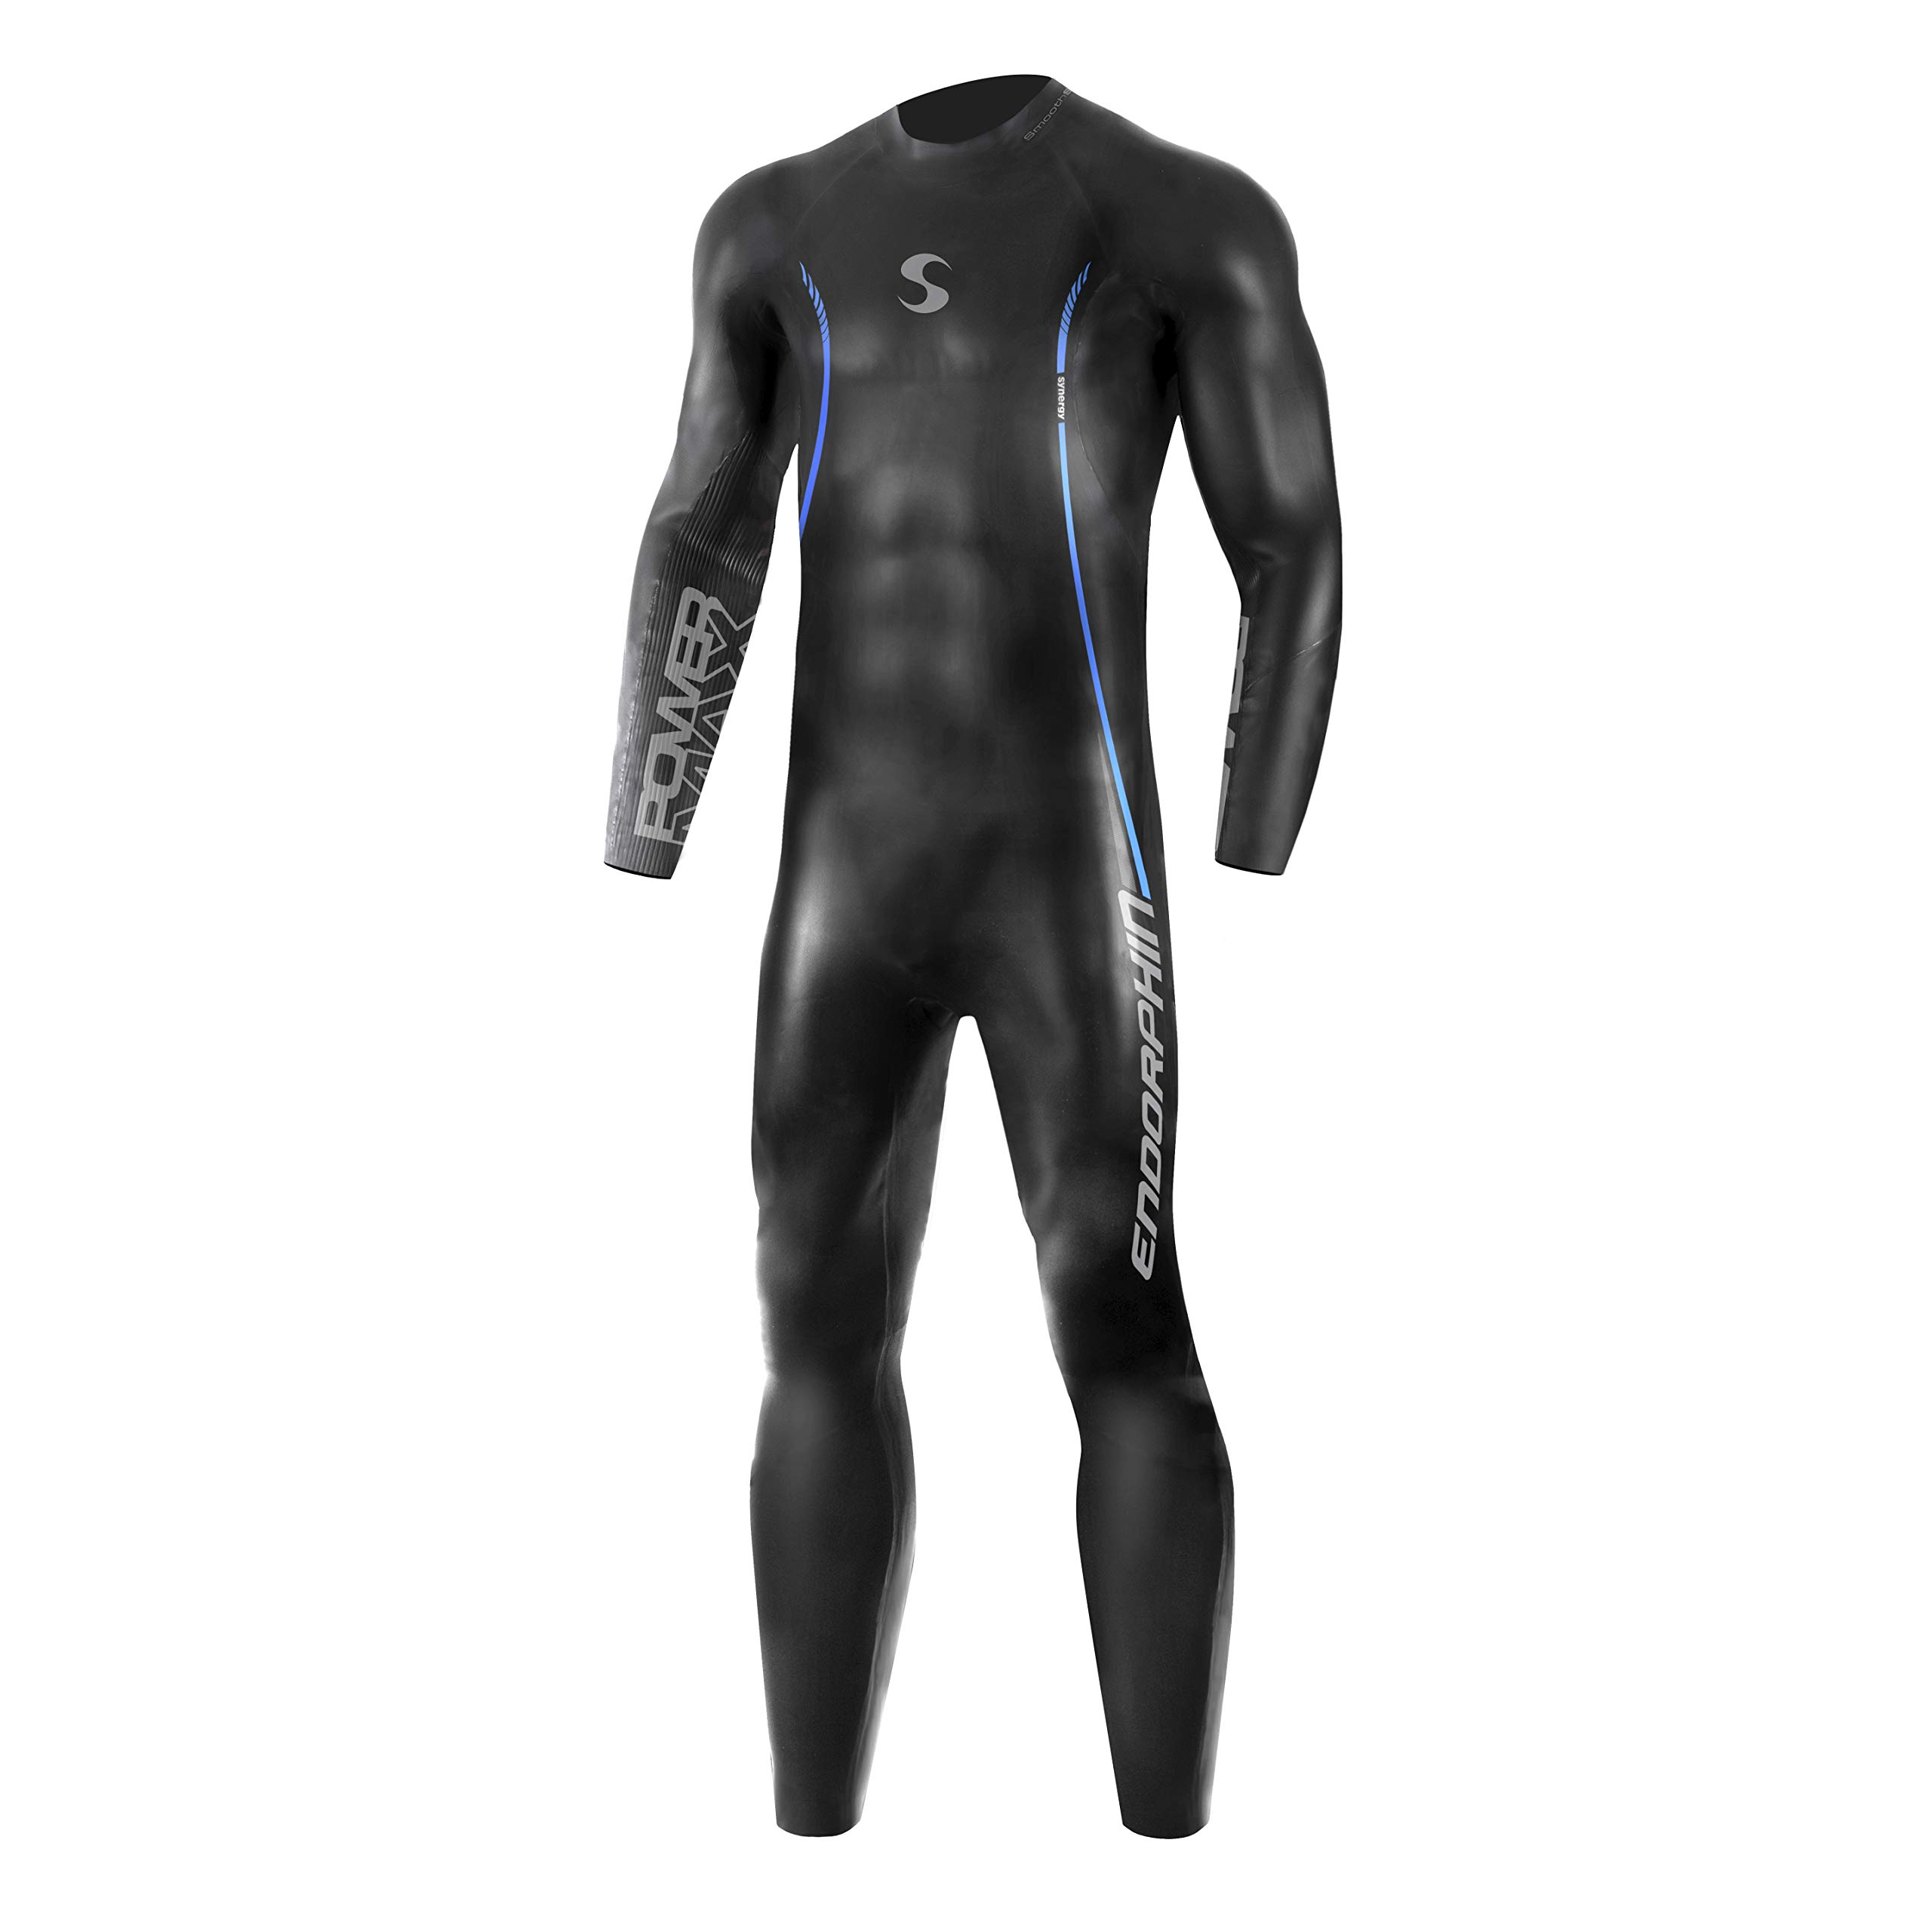 Synergy Endorphin Men's Full Sleeve Triathlon Wetsuit (S2) by Synergy